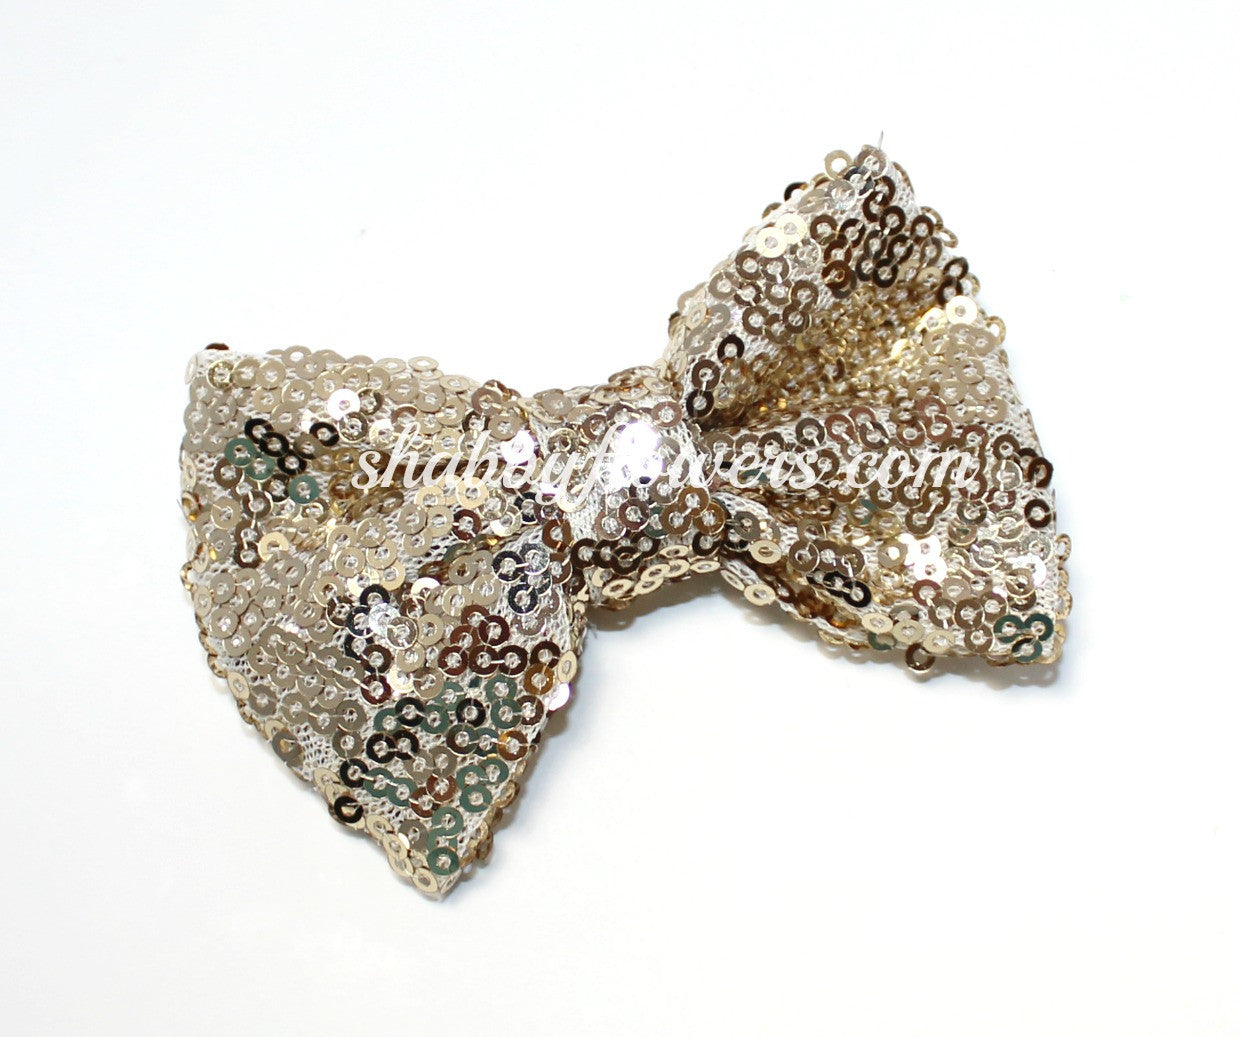 Medium Sequin Bow - Champagne - shabbyflowers.com